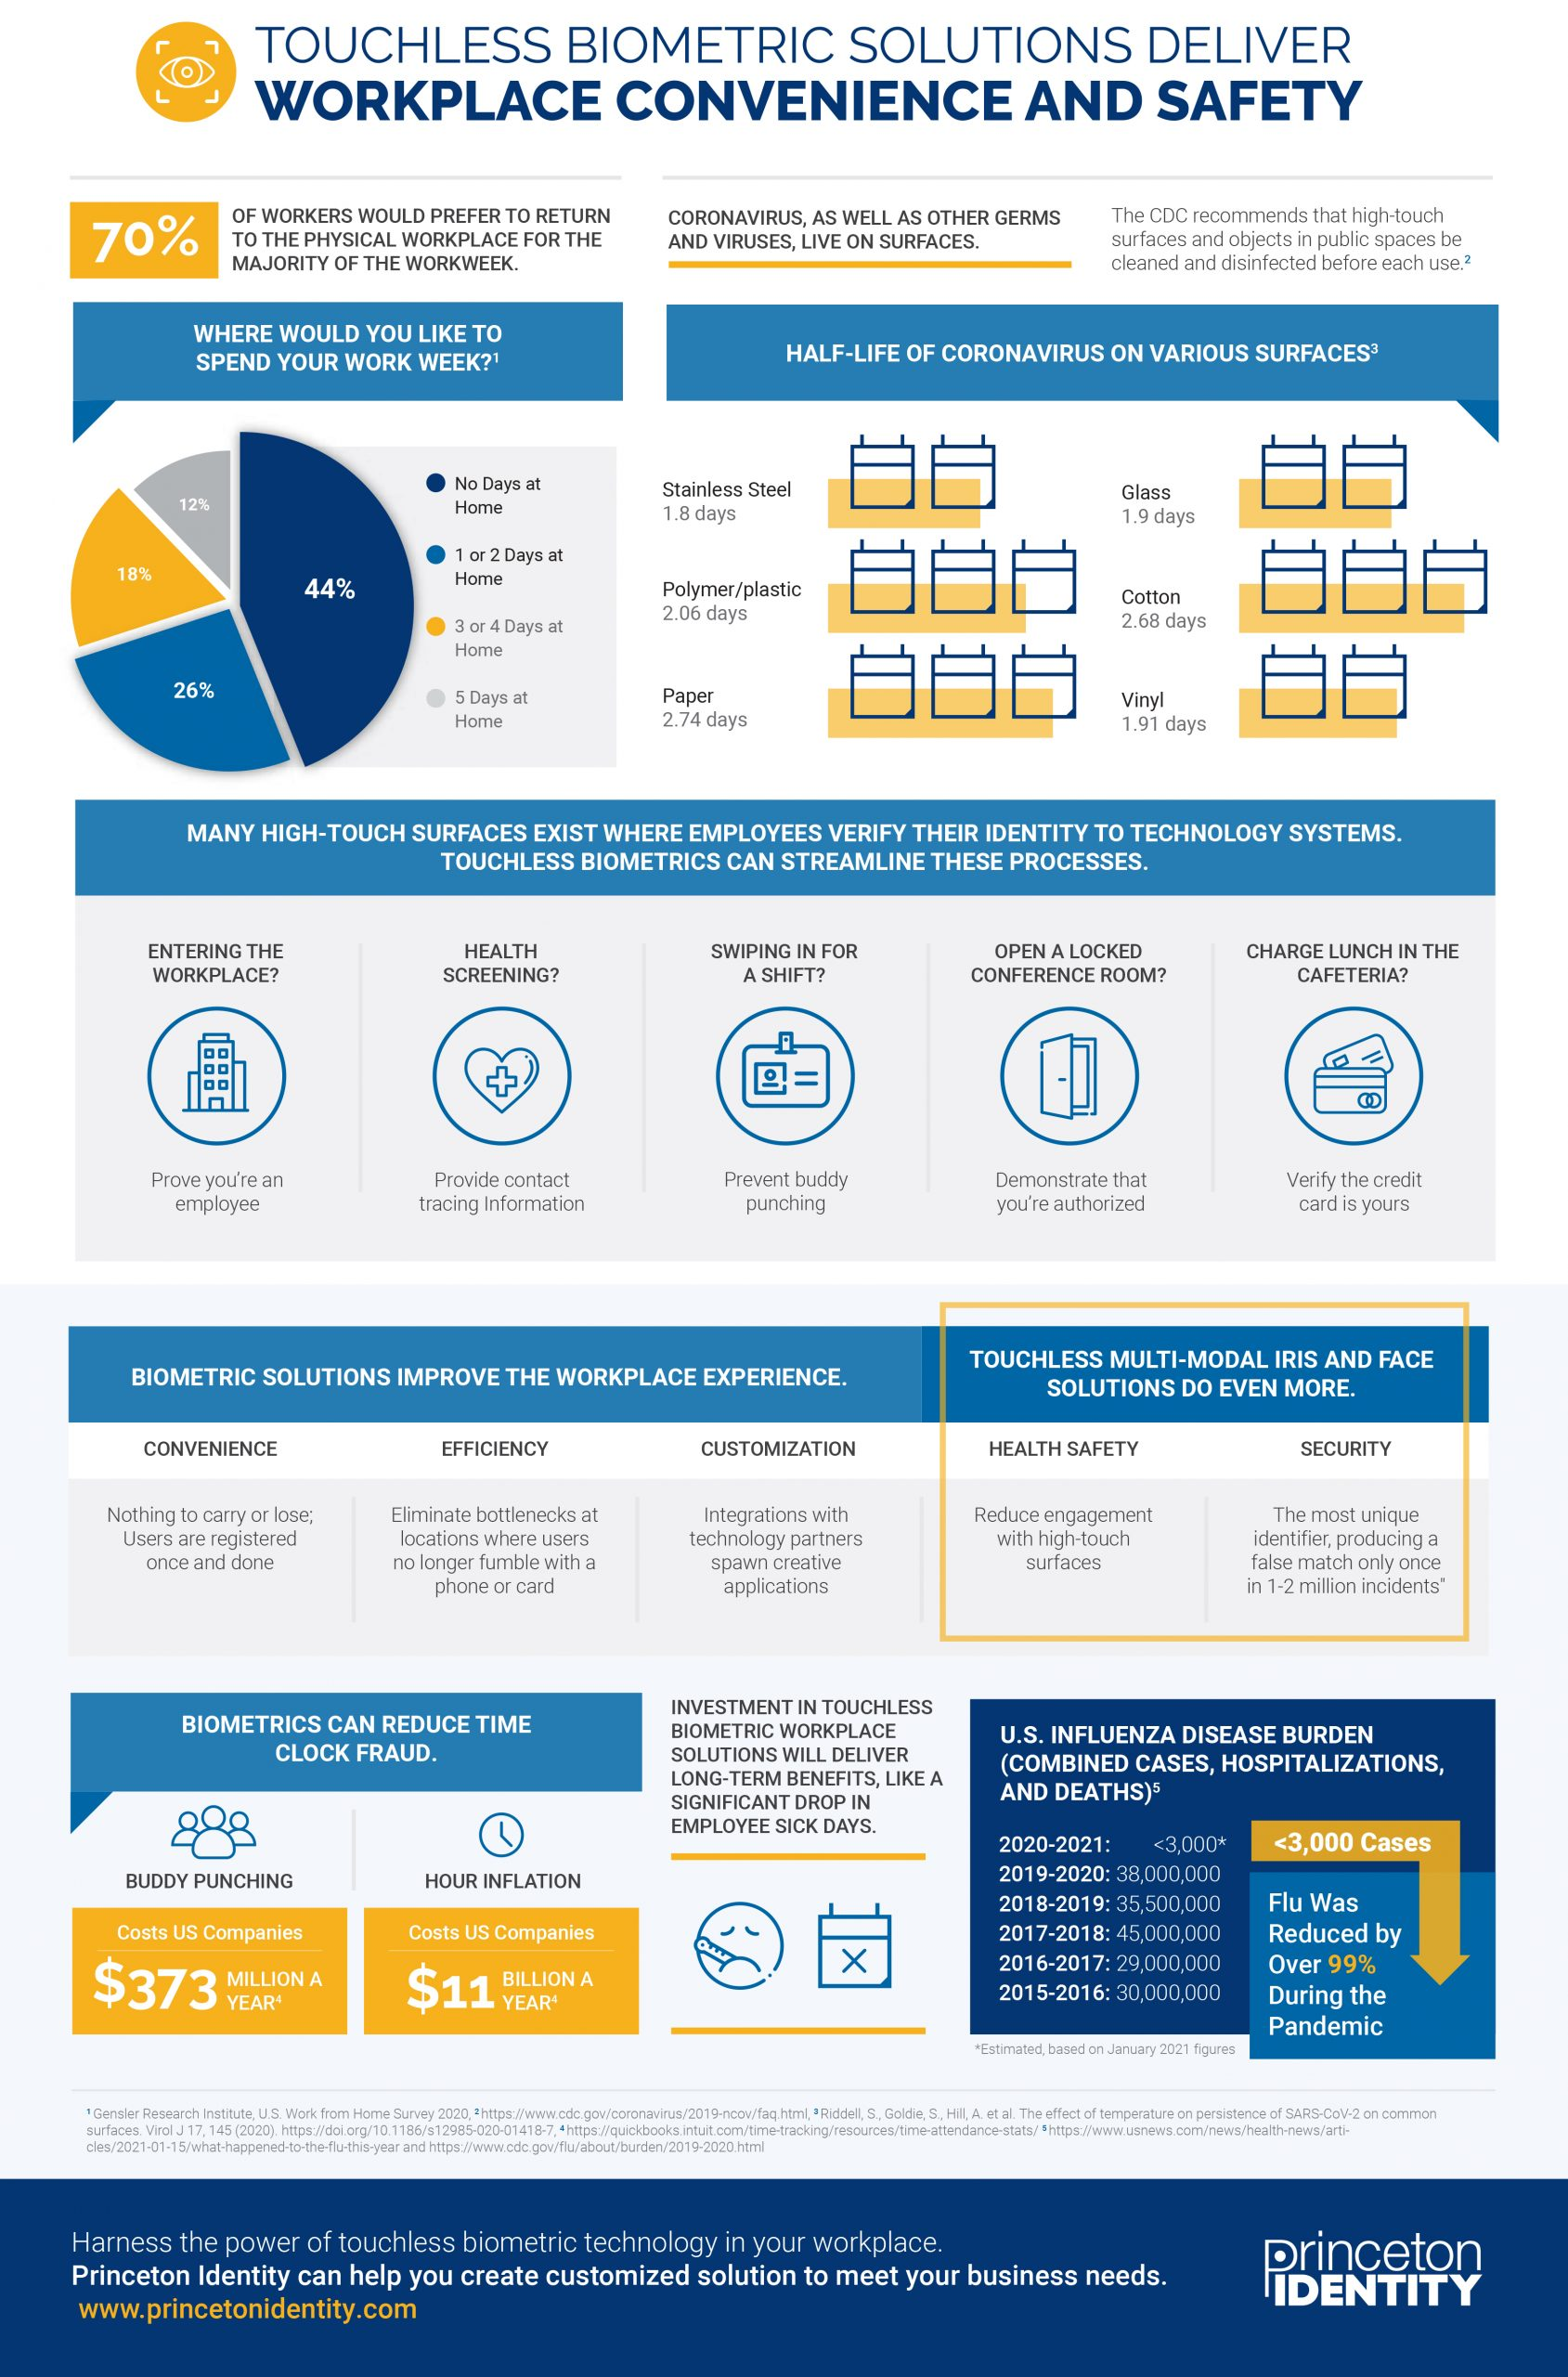 princeton identity infographic touchless biometric solutions deliver workplace safety